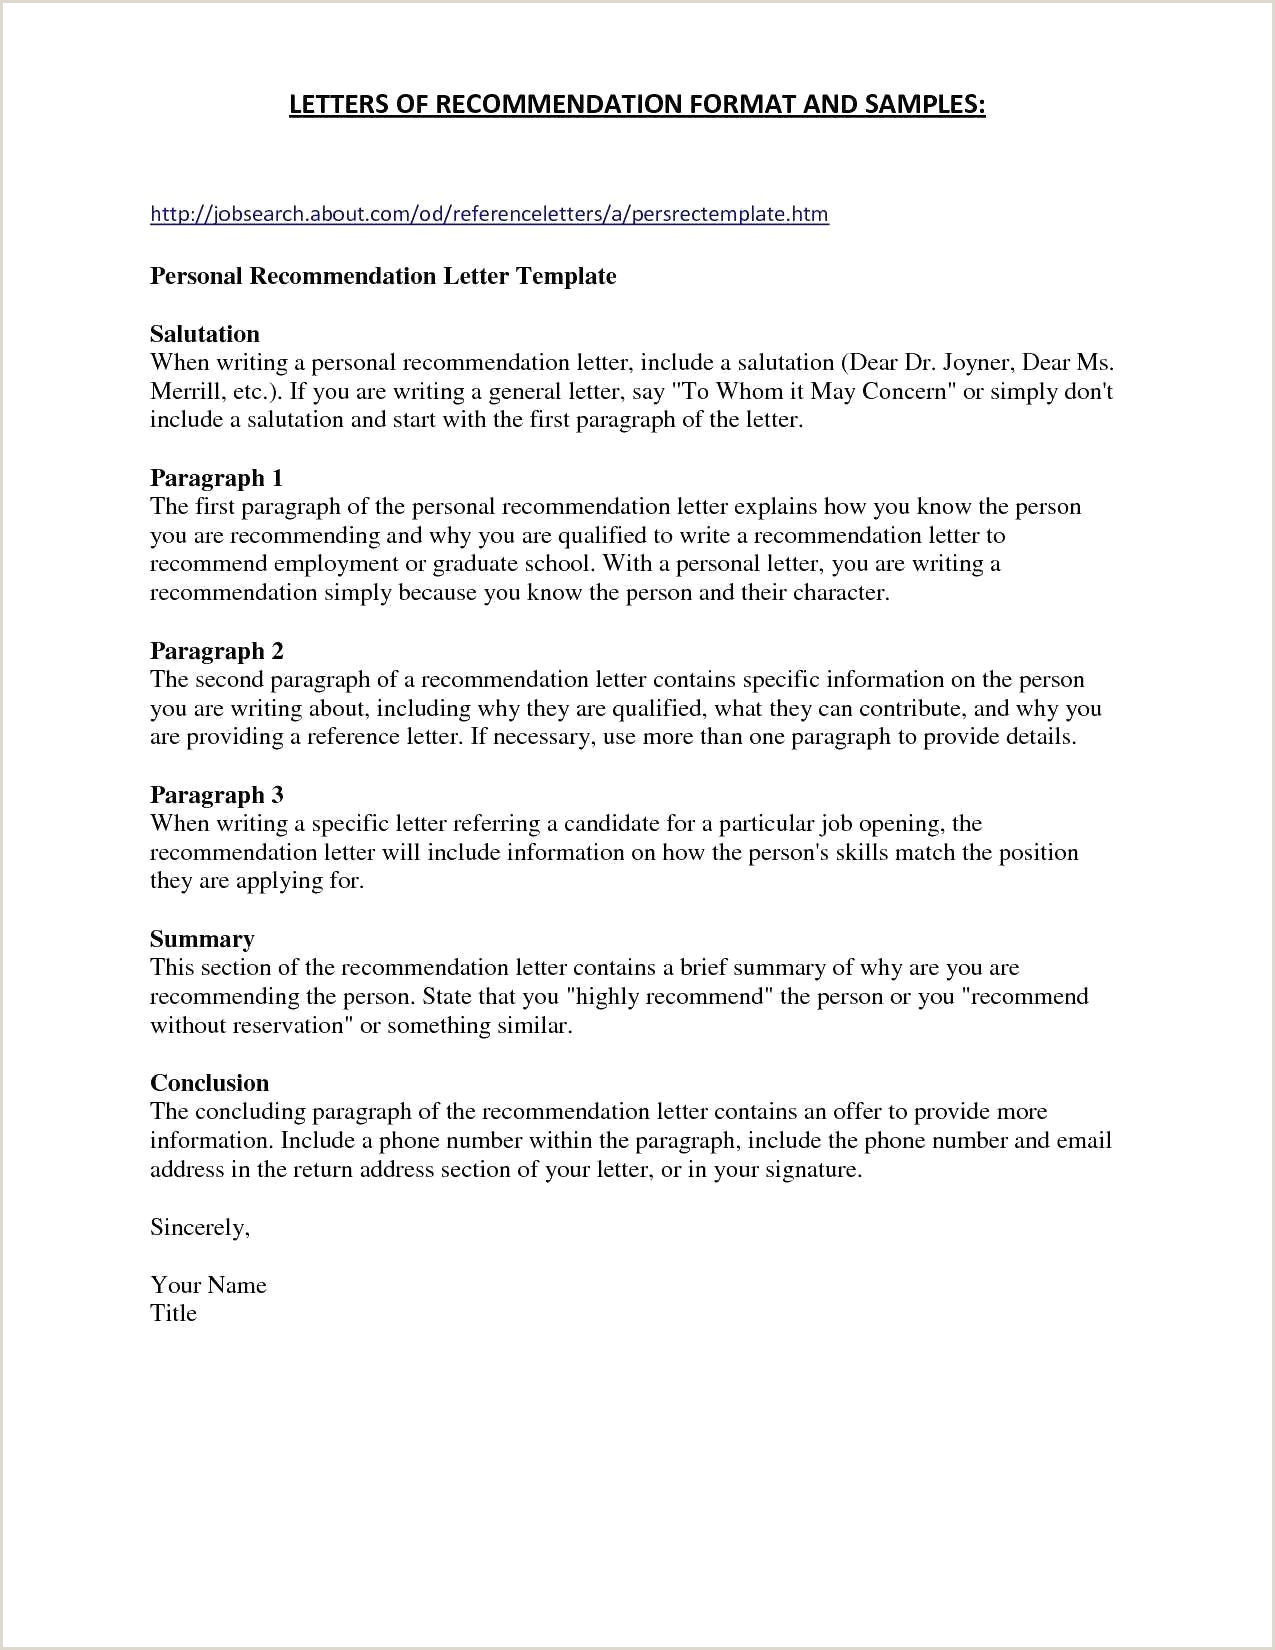 Resume format for Lecturer Job Pdf Cover Letter for Teacher Resume In India New Samples